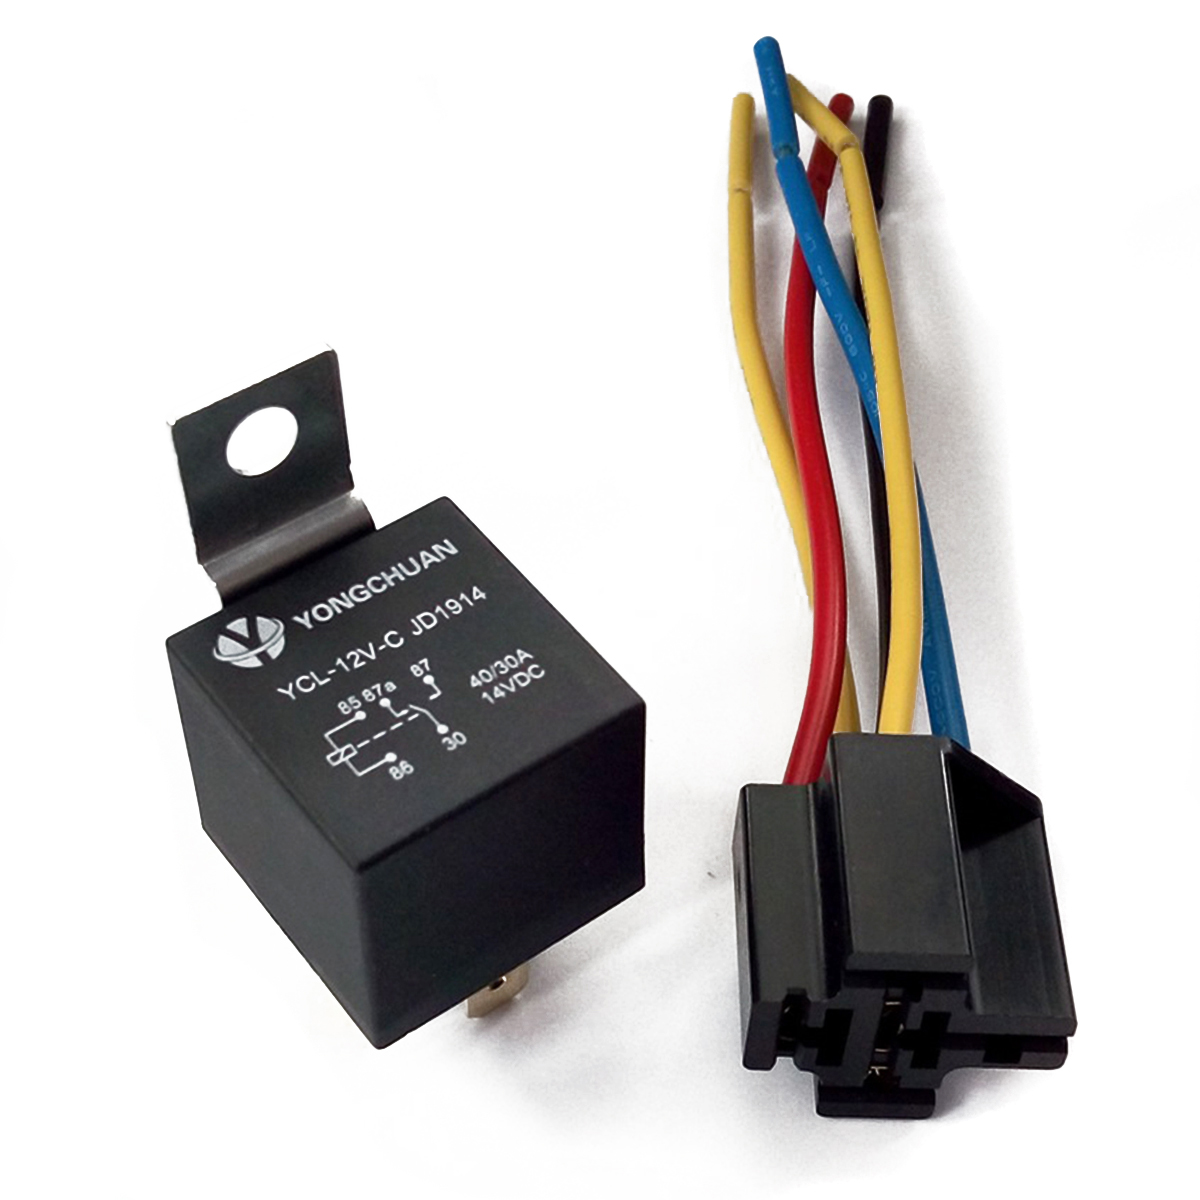 US $10 43 30% OFF|5 Set New 12V Car Relay 12 Volt DC 40A Relay & Socket  SPDT 5 Pin with 5 Wires For Car Truck Accessories-in Relays from Home